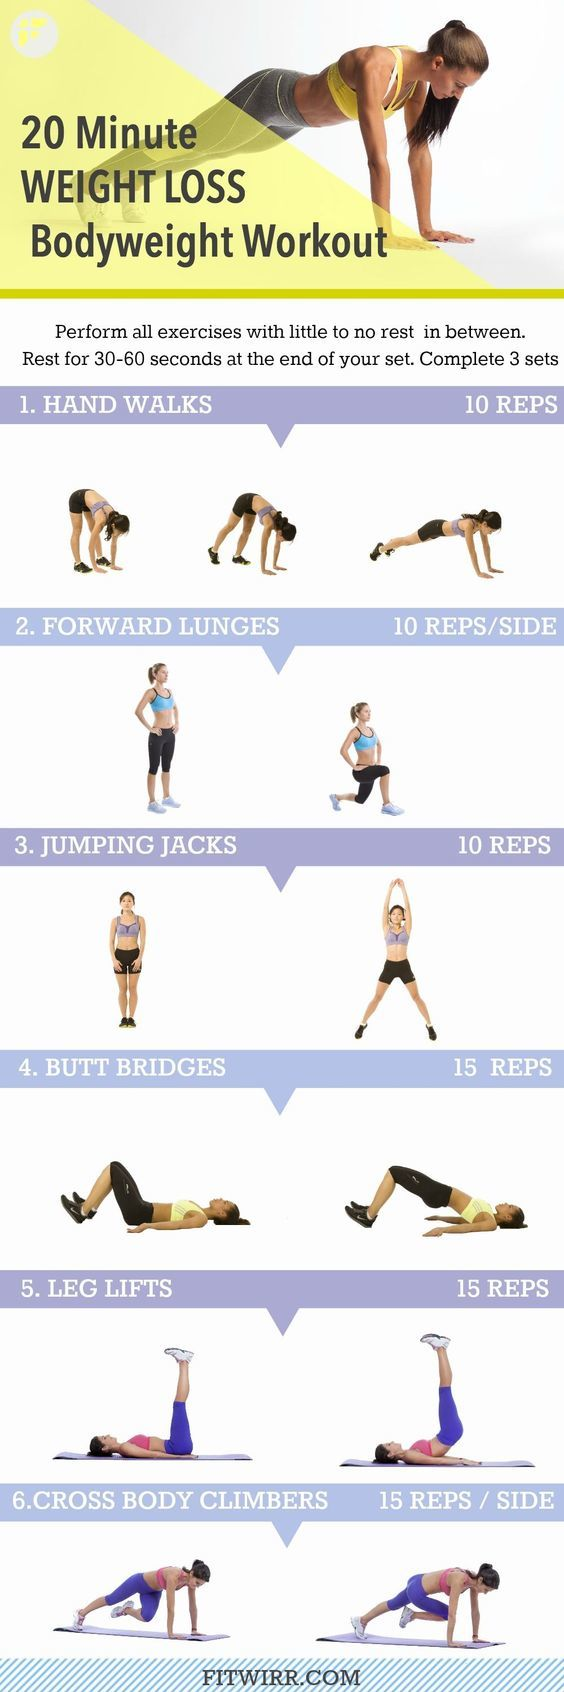 Get slim with these fat loss workouts for females you can try at home. | best belly fat burning exercises at home | best belly fat burning exercise | fat burning workout for beginners | fat burning workouts at home #weightloss #keepingfit #healthier #health #fitness #workouts #fitnessgoals #healthylifestyle #healthyhabits